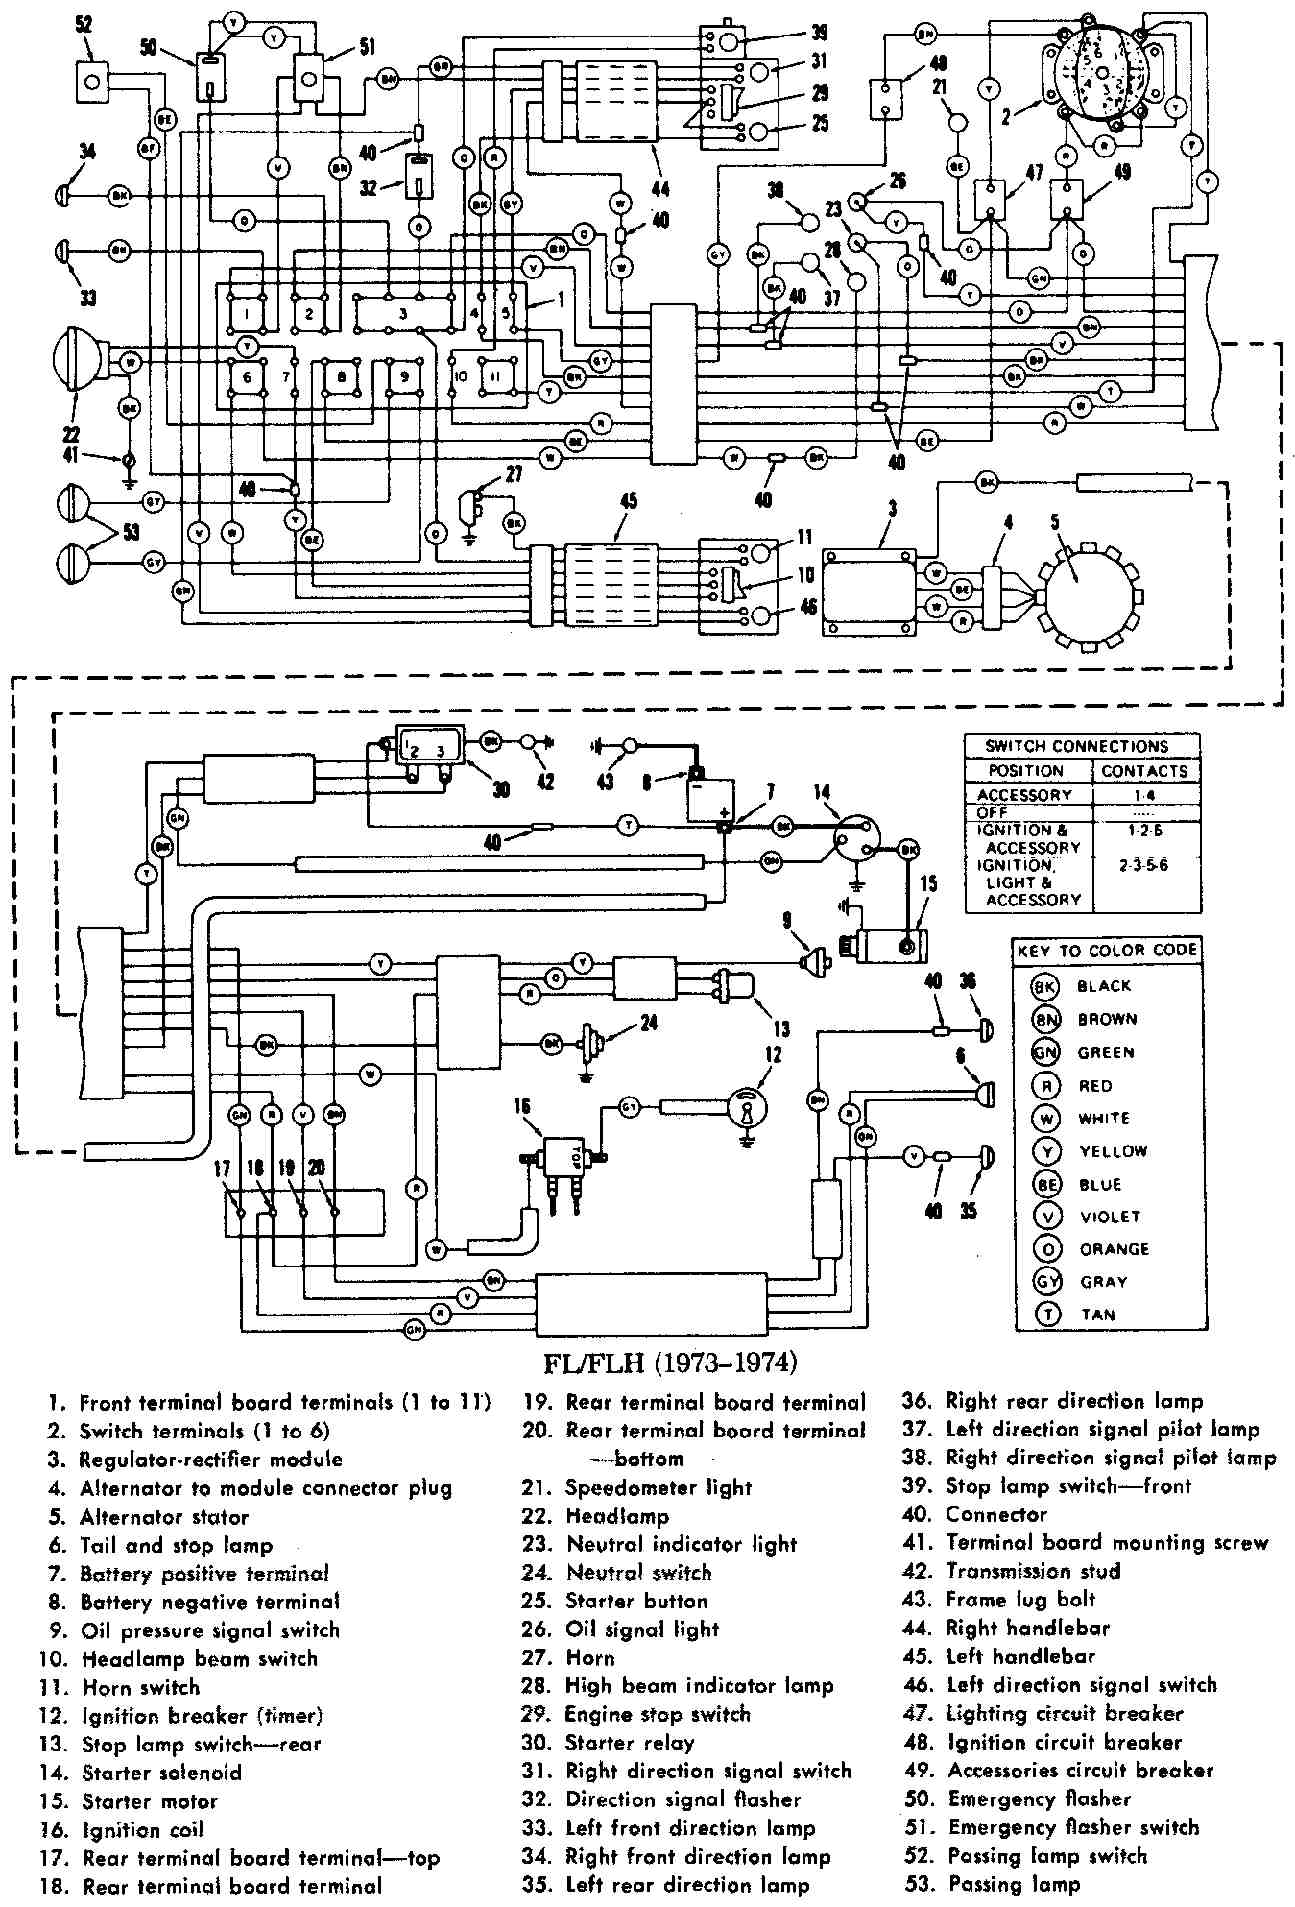 1971 Dodge Charger Instrument Cluster Wiring Diagram Wire Data 1974 1968 Amc Amx Starter Pontiac Fiero 2006 2008